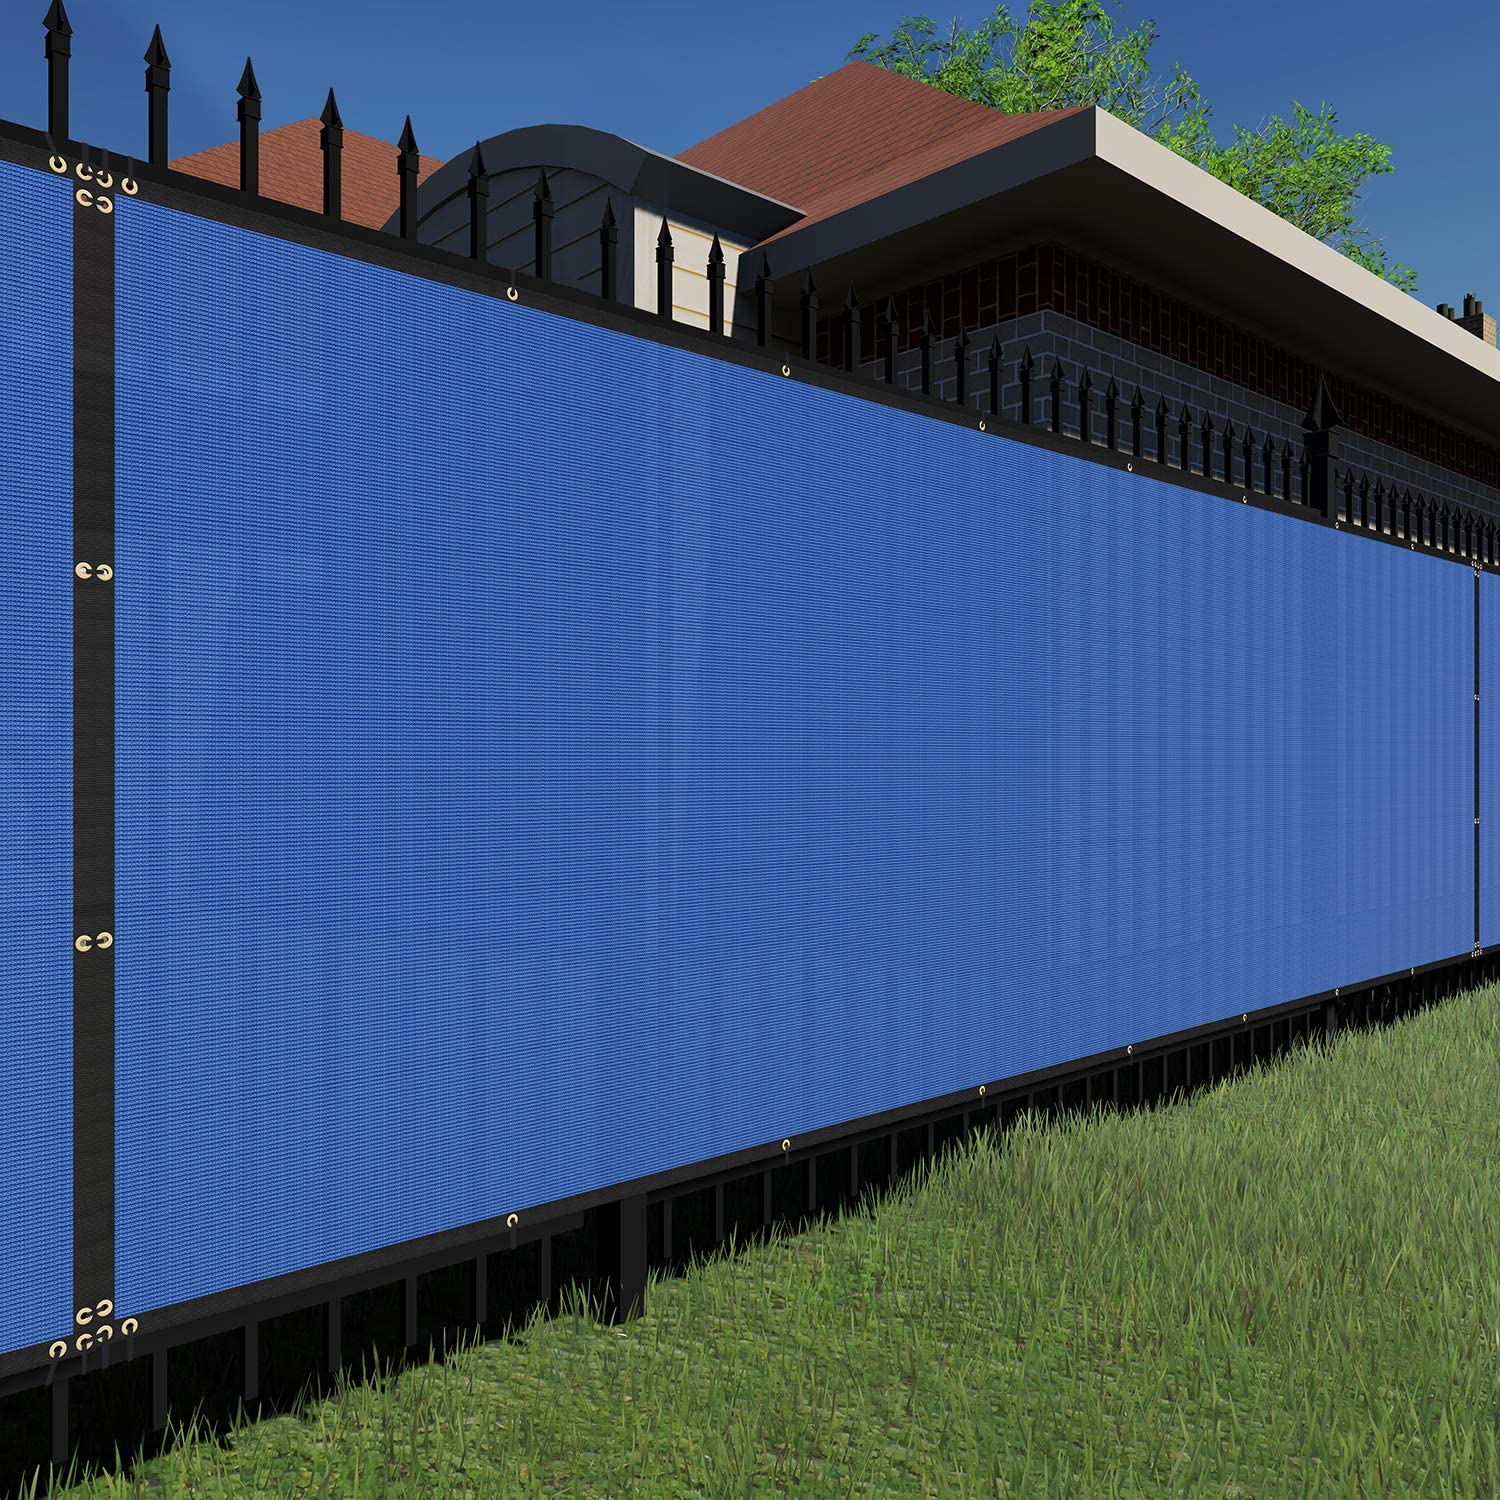 TANG Sunshades Depot Blue 4'x20' 150 Privacy Popularity Fence GSM Co Screen Max 79% OFF